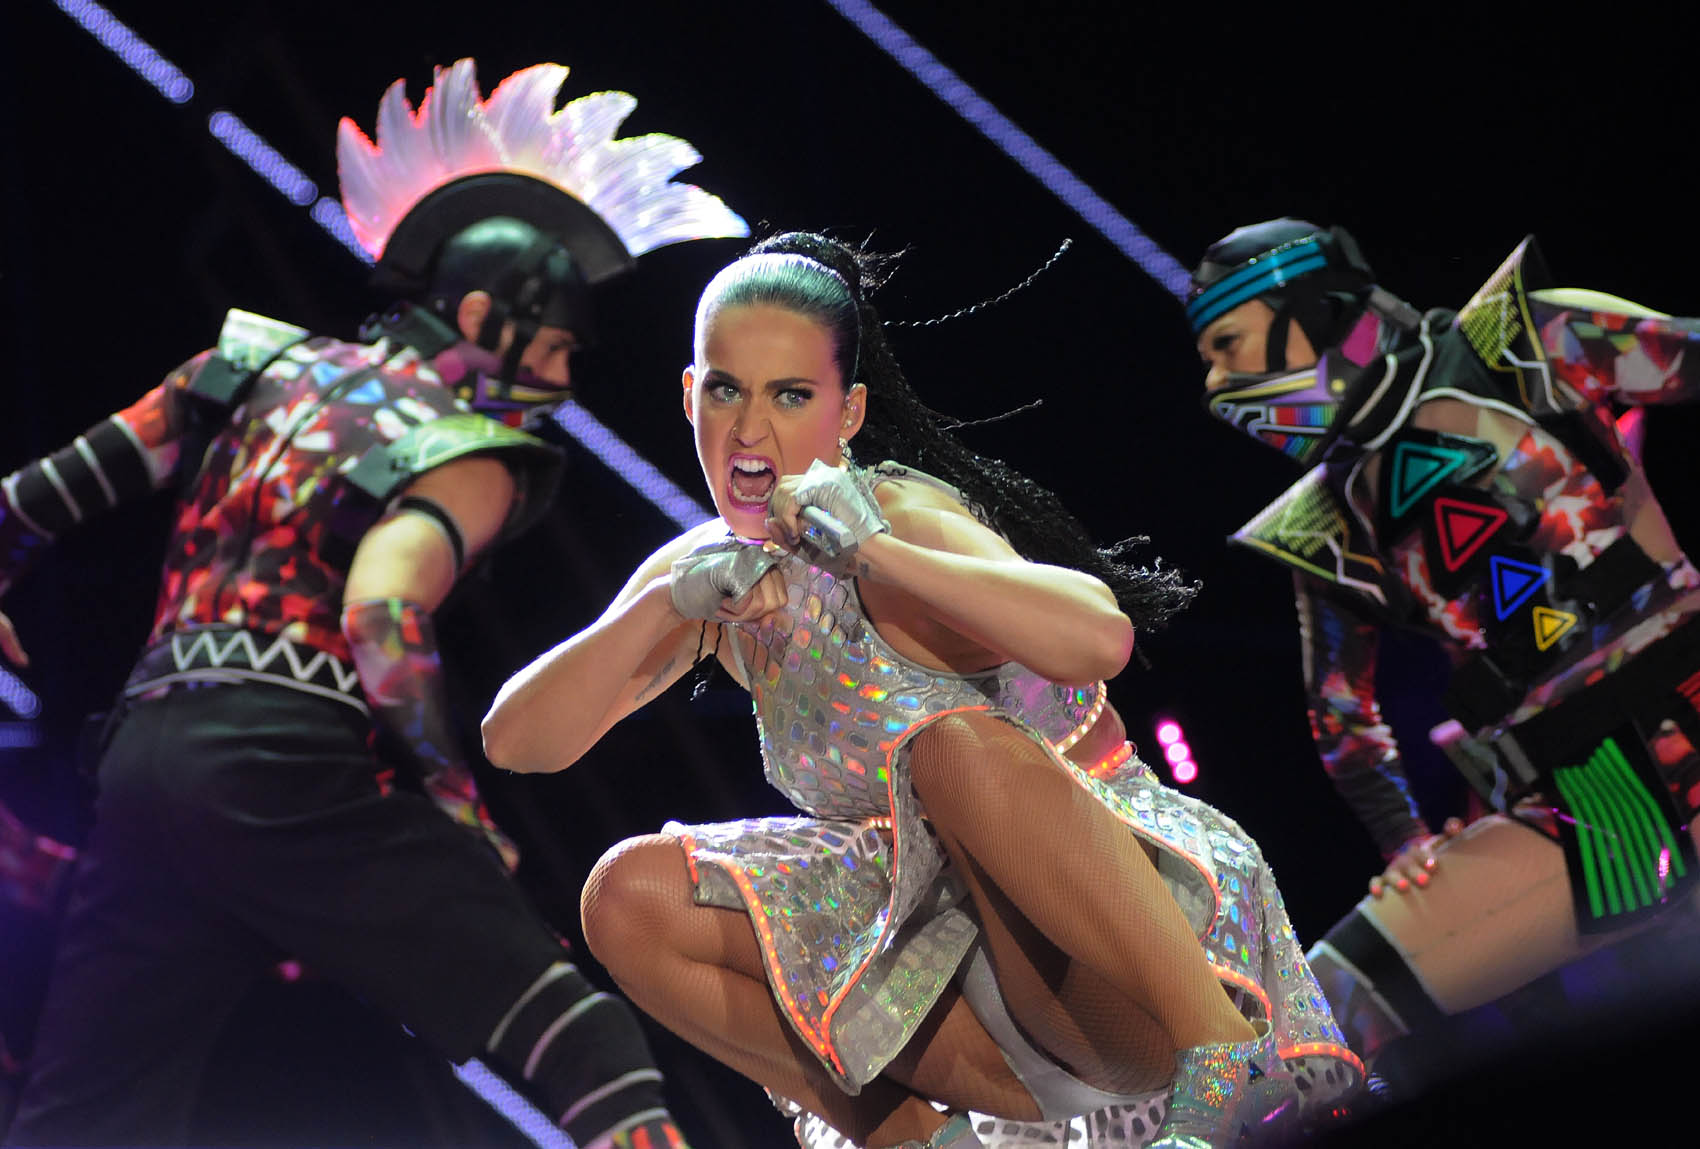 Katy Perry toca no Palco Mundo no último dia do Rock in Rio